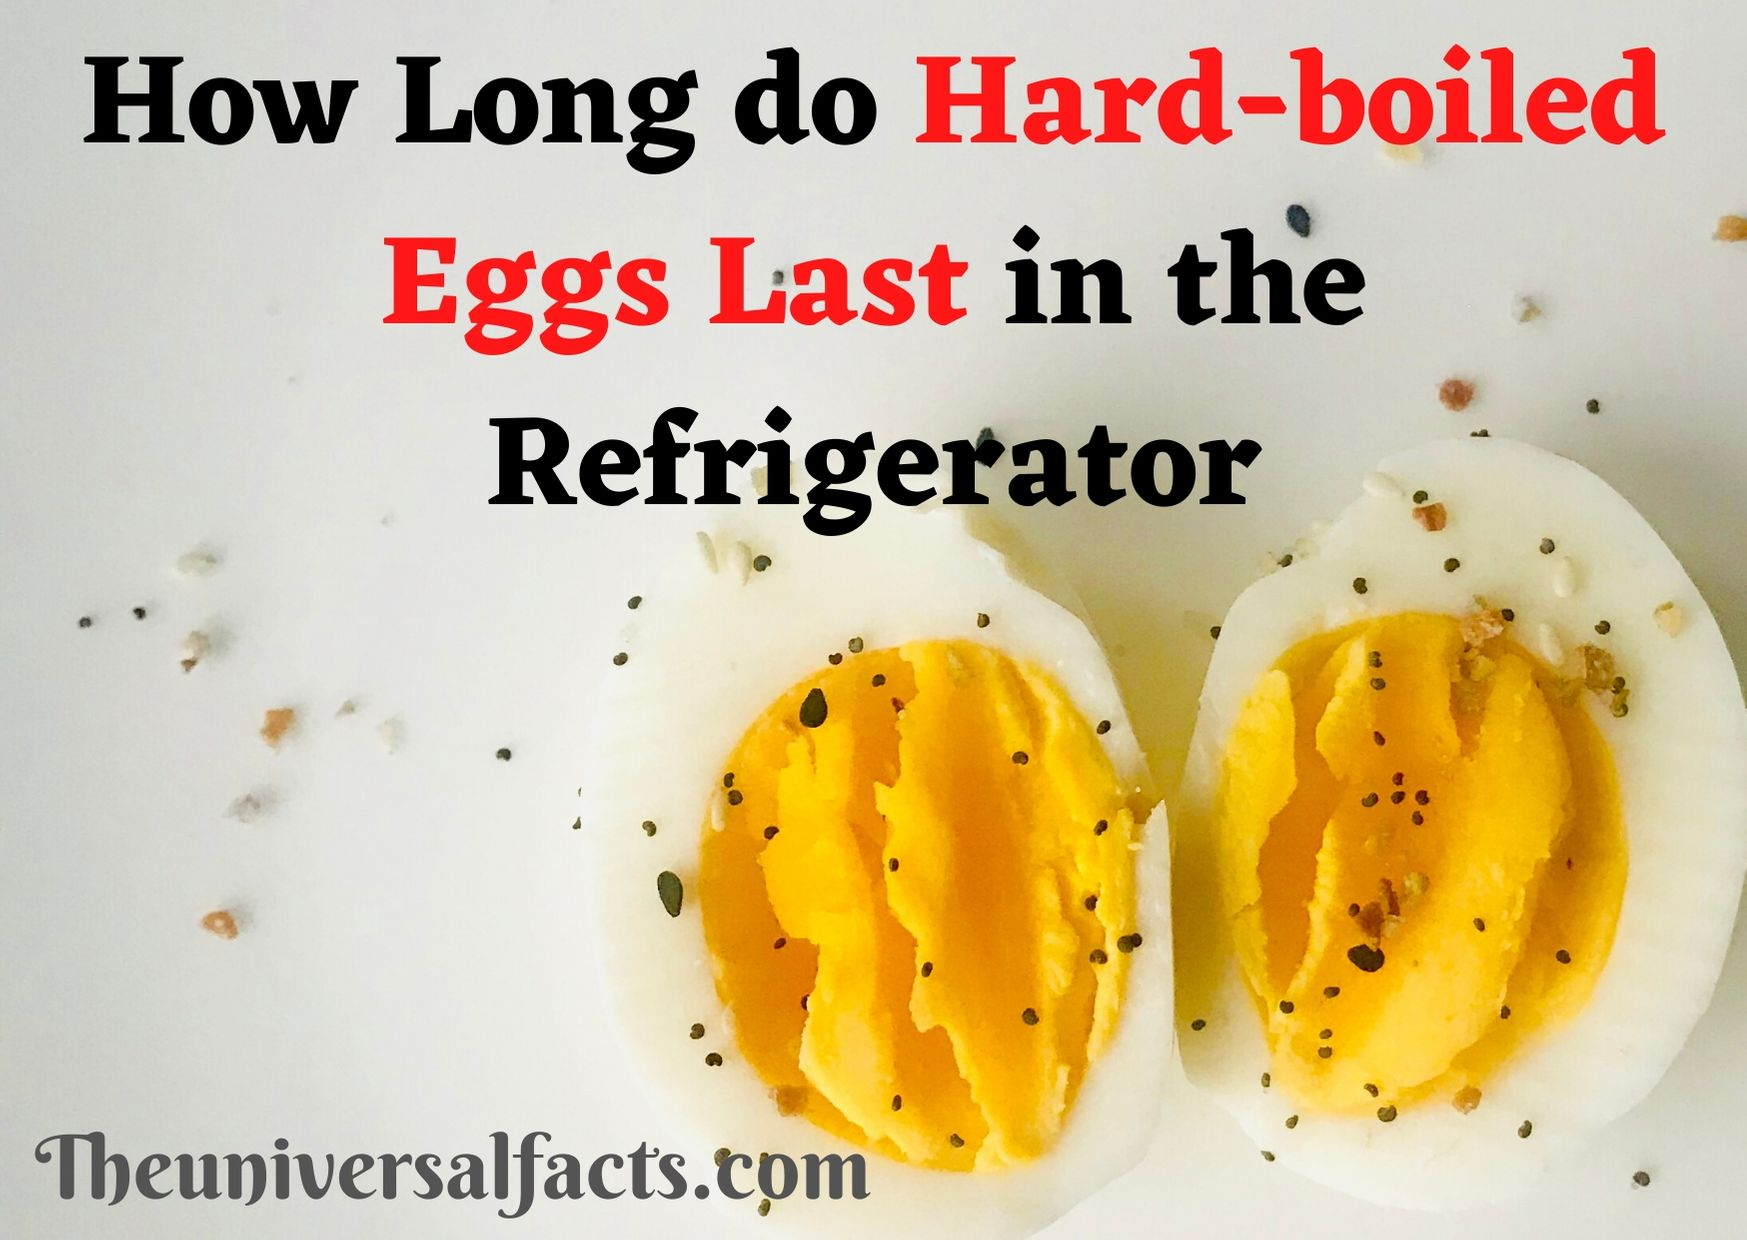 How Long do Hard-boiled Eggs Last in the Refrigerator